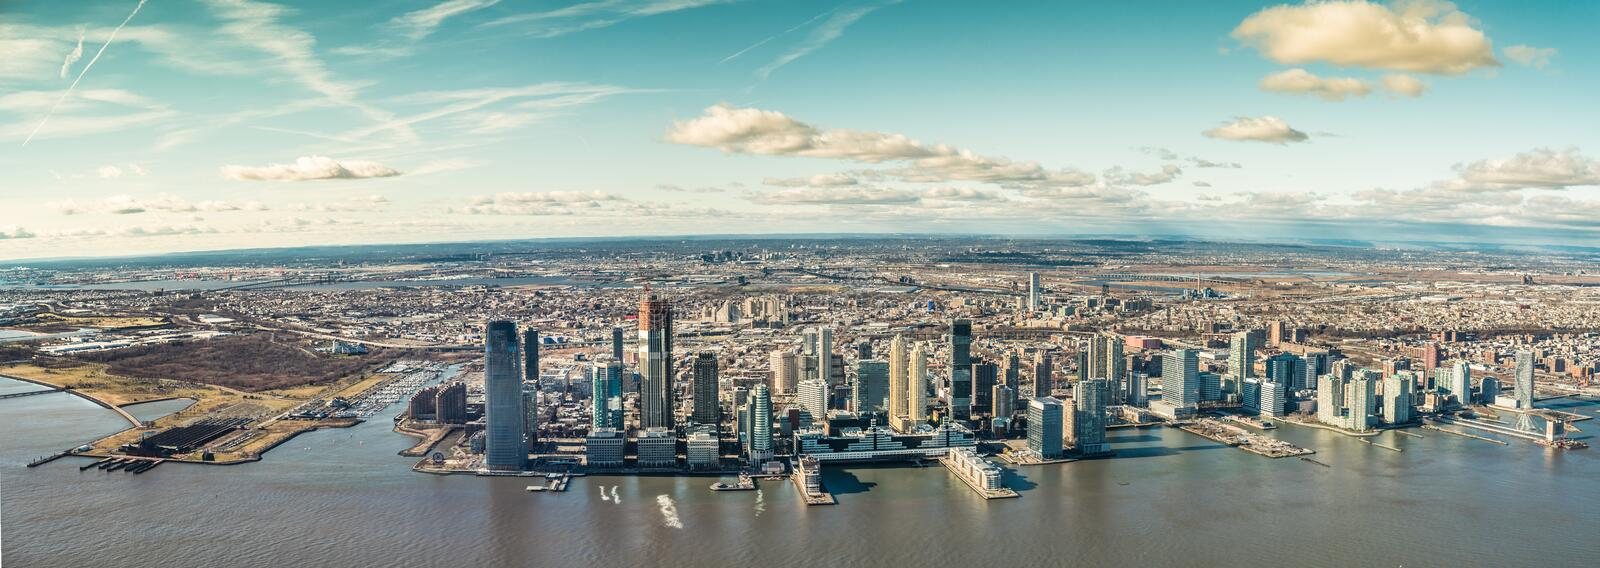 Skyline Jersey City in the U.S. state of New Jersey stock photos